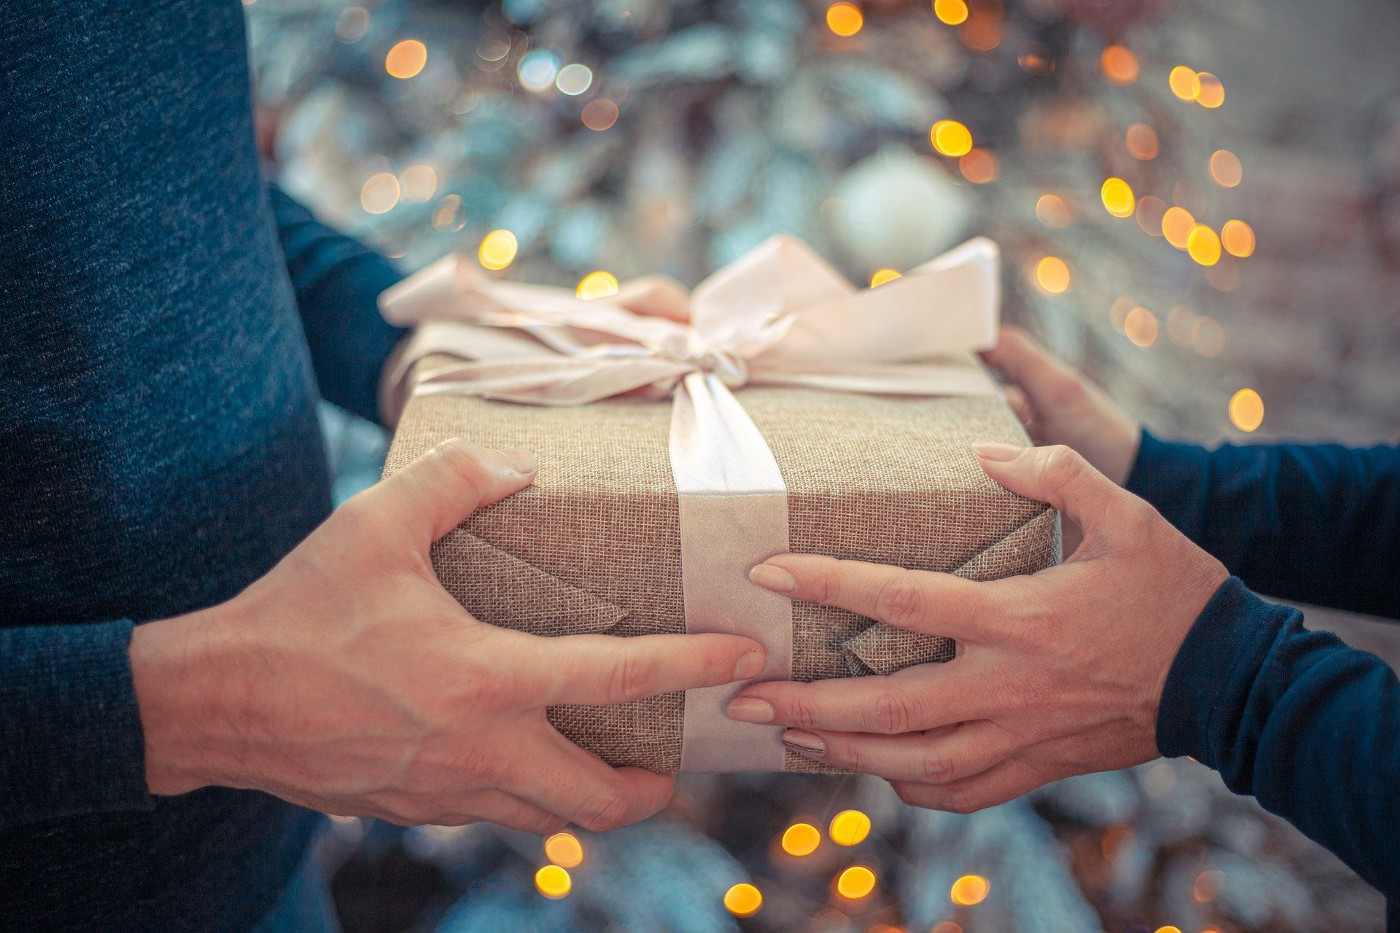 Two people hold a present wrapped with a bow